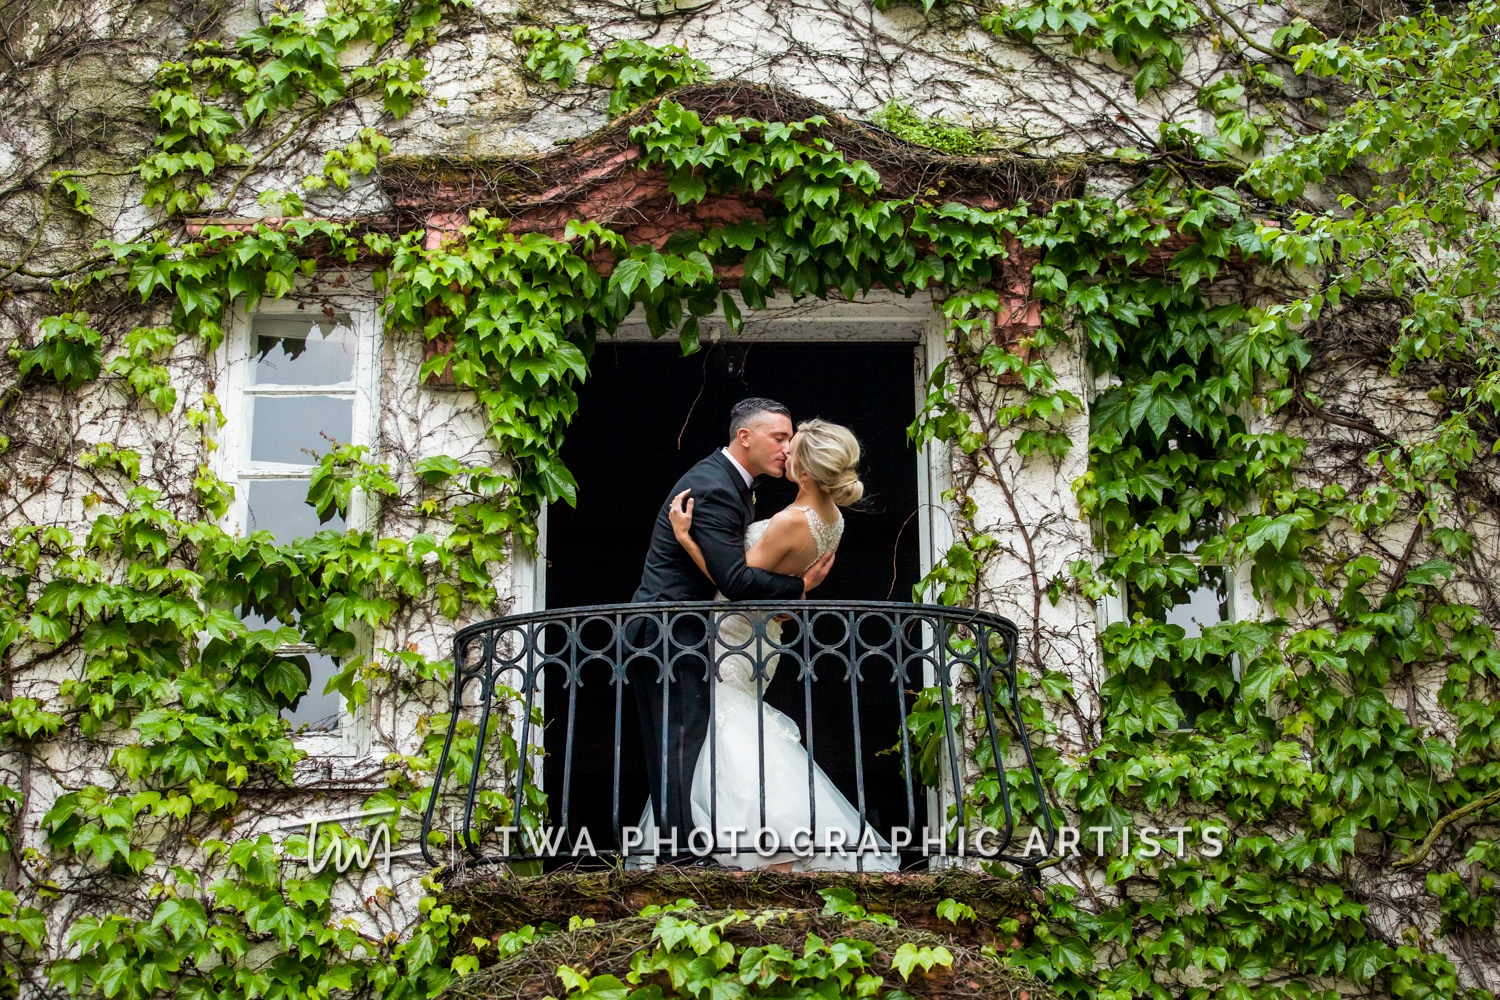 Chicago-Wedding-Photographer-TWA-Photographic-Artists-Ravisloe-CC_Steele_Zenere_JM_MP-0552